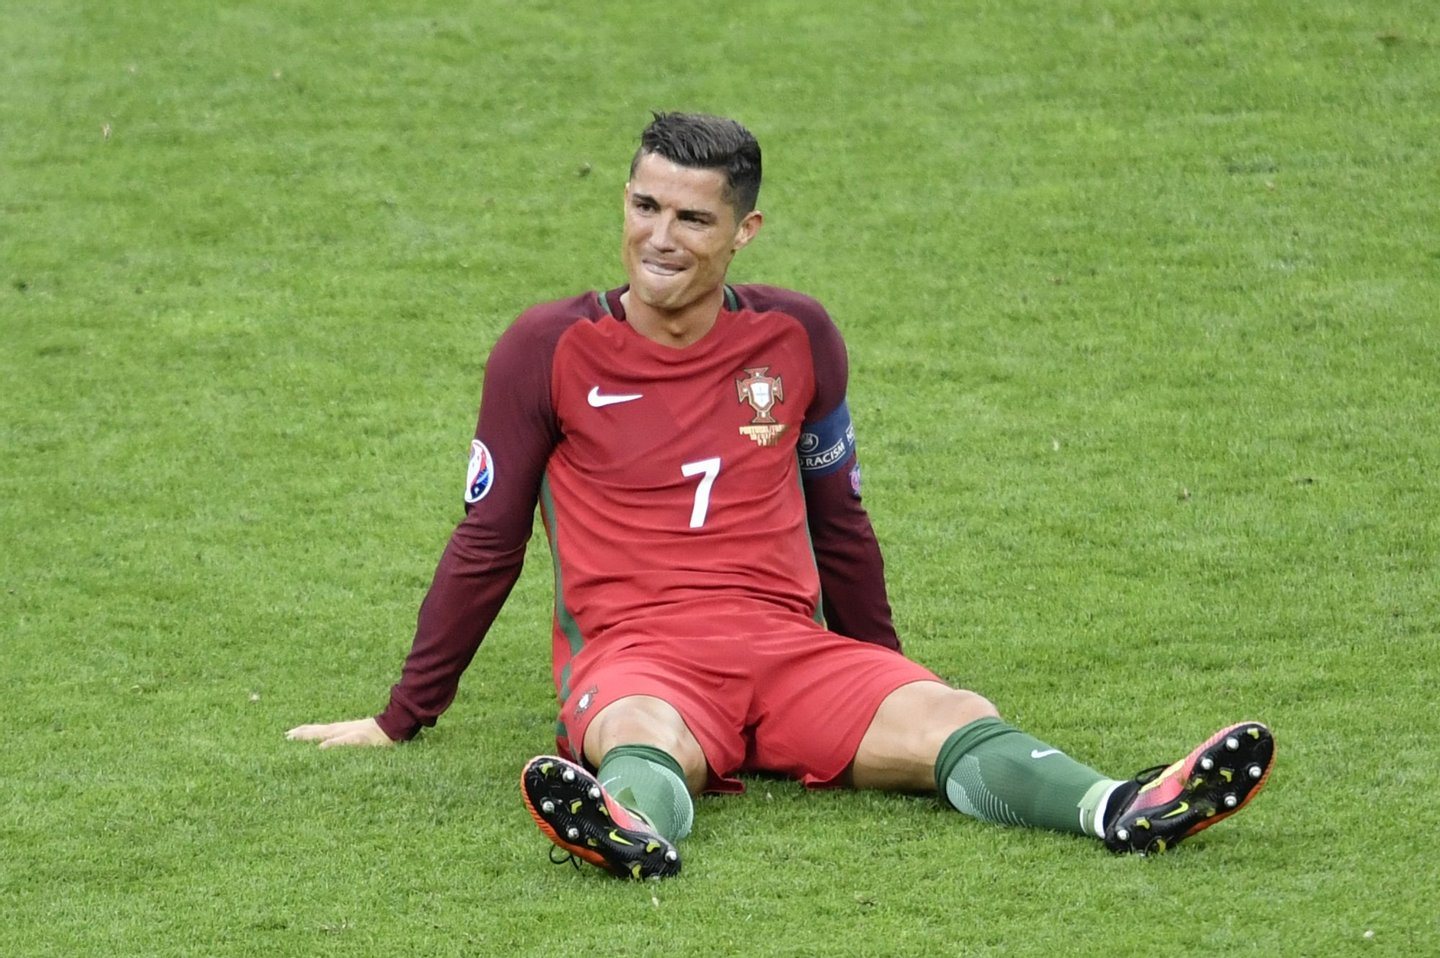 Portugal's forward Cristiano Ronaldo reacts after an injury following a clash with France's forward Dimitri Payet (not pictured) during the Euro 2016 final football match between Portugal and France at the Stade de France in Saint-Denis, north of Paris, on July 10, 2016. / AFP / PHILIPPE LOPEZ (Photo credit should read PHILIPPE LOPEZ/AFP/Getty Images)